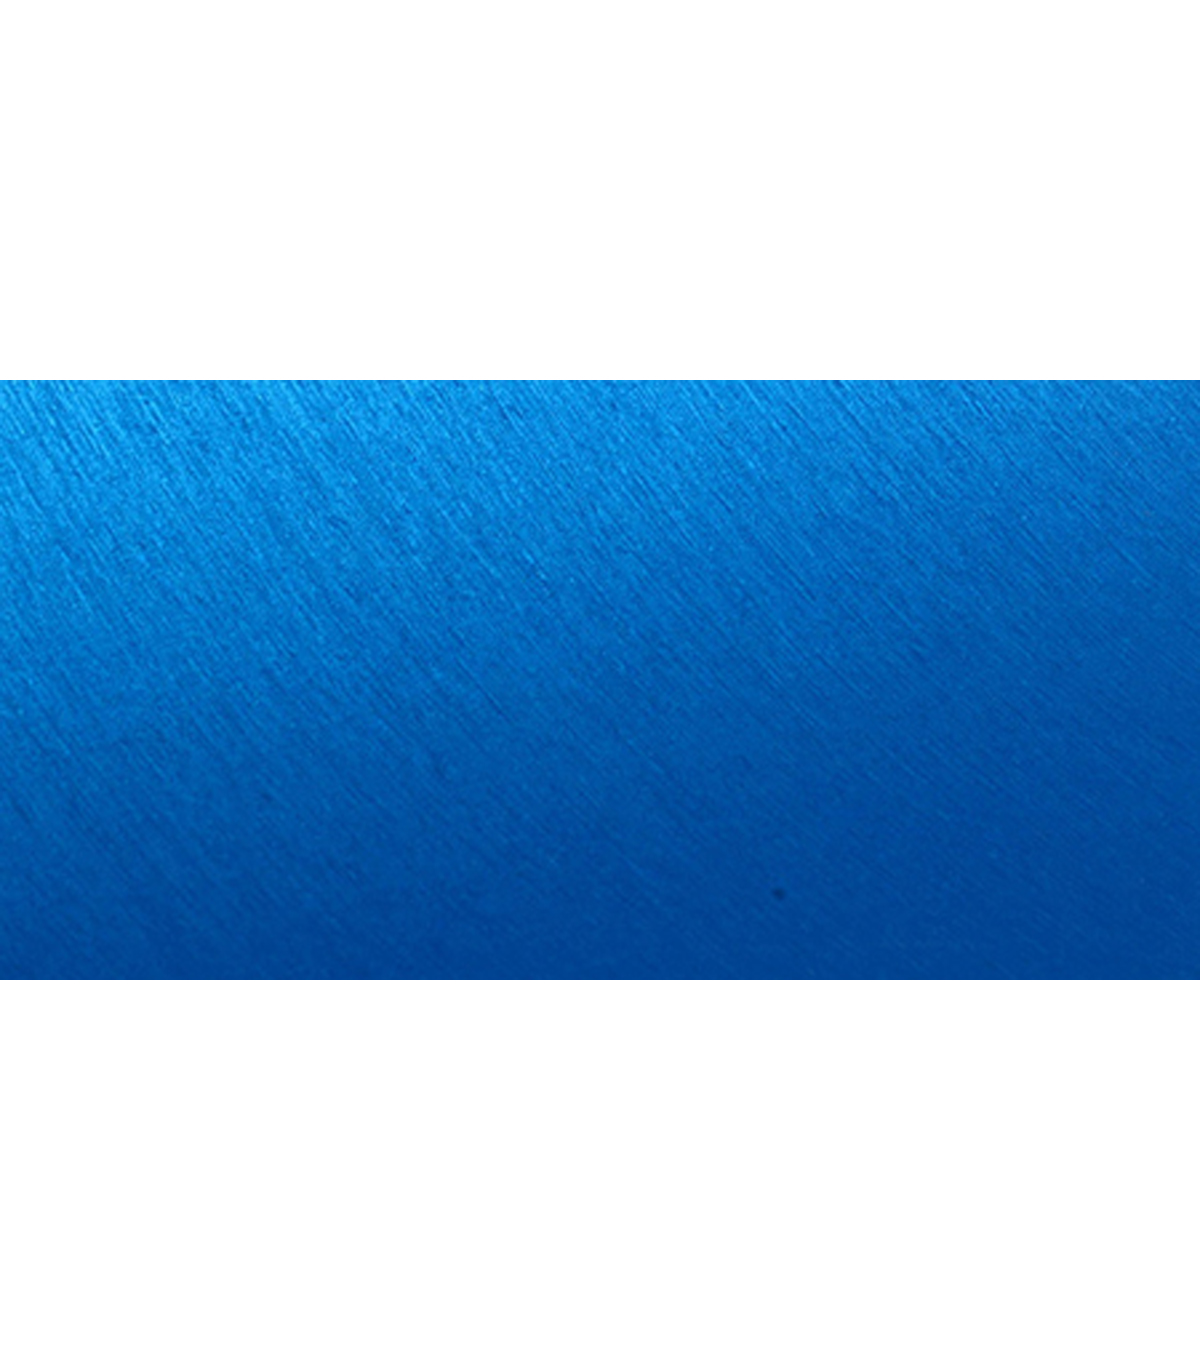 Allton 6\u0022X9\u0022 Satin Glitter Sticky Paper-Royal Blue